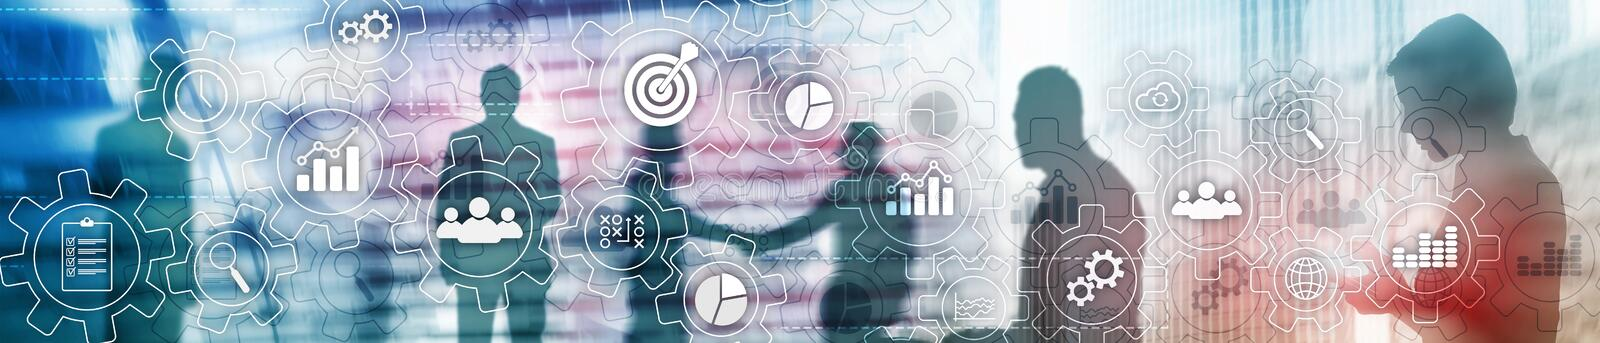 Business process abstract diagram with gears and icons. Workflow and automation technology concept. Website header banner stock photo